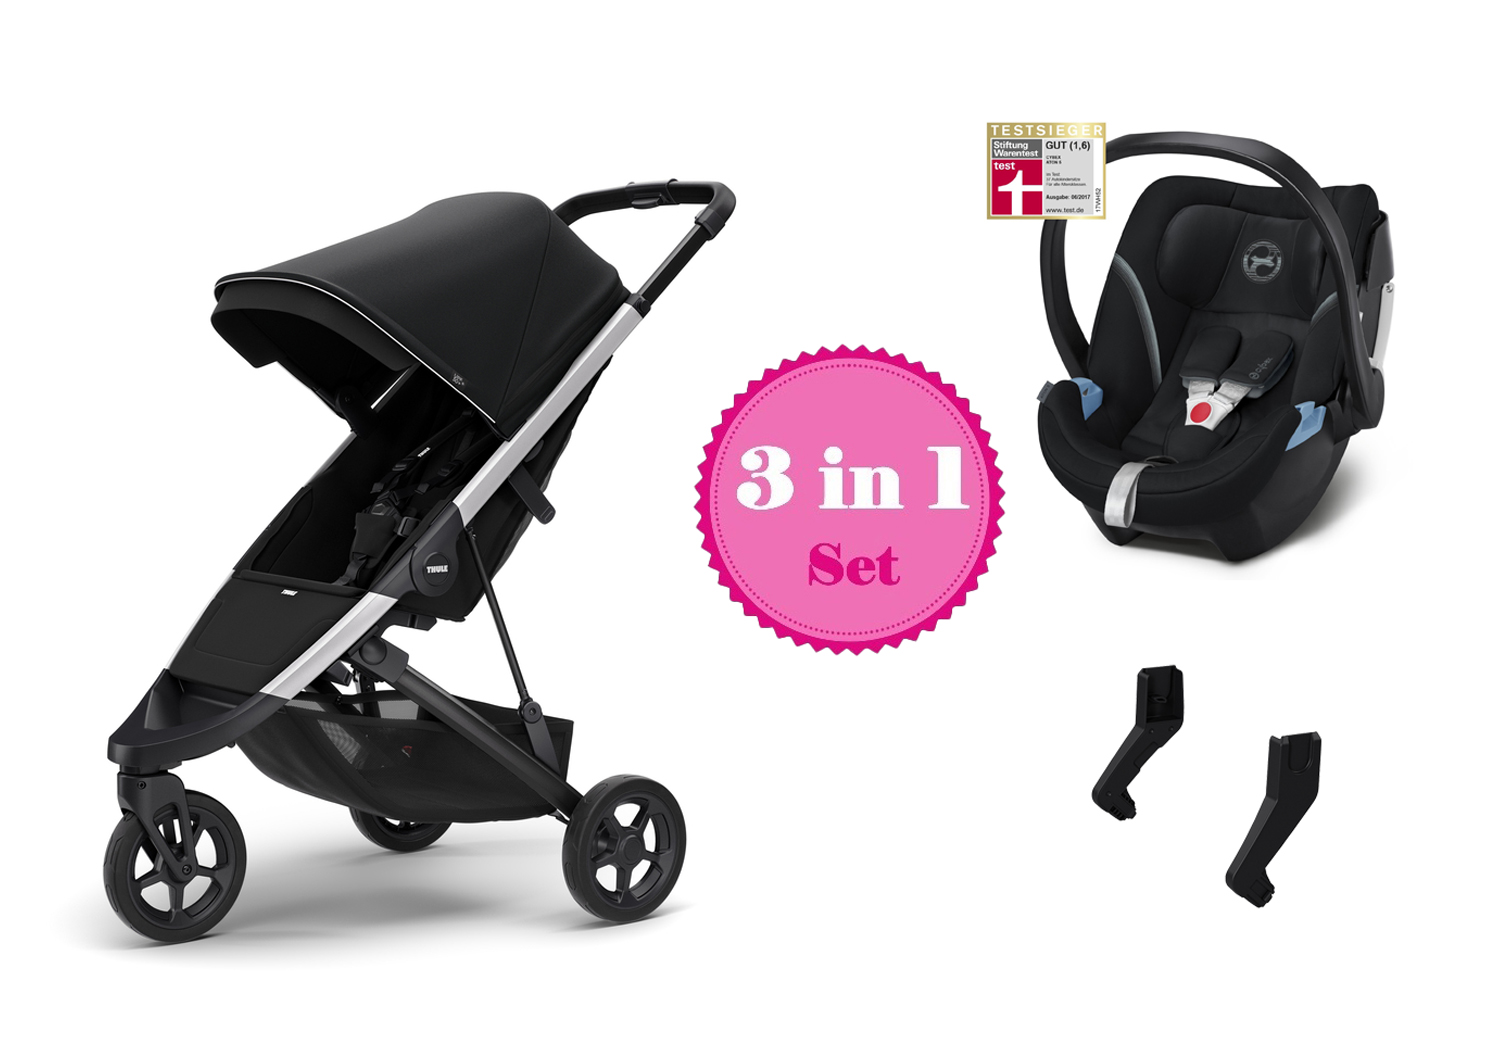 Buggy Test Warentest Thule Spring Buggy Set 3 In 1